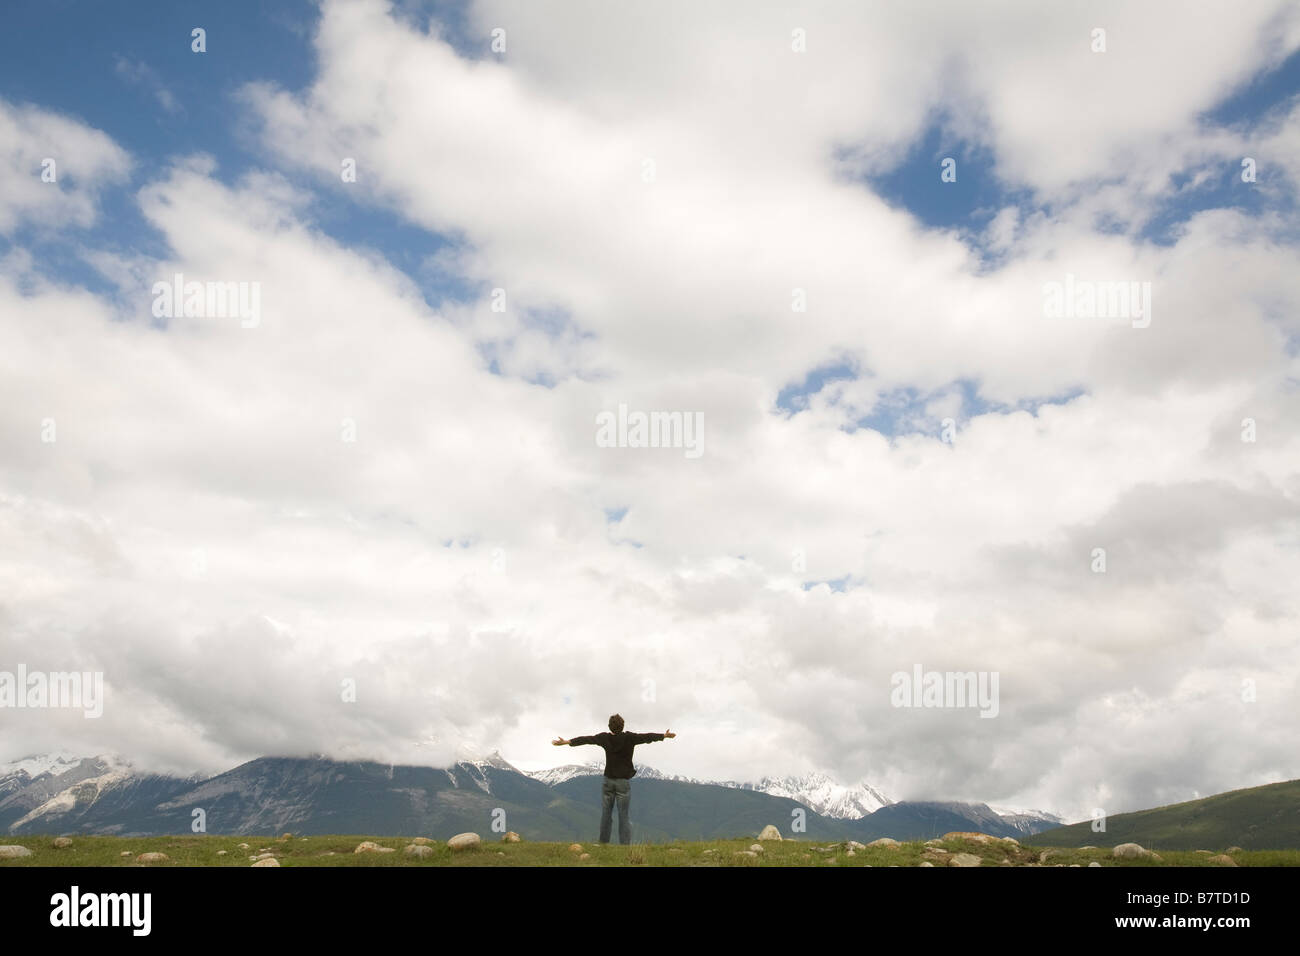 person on an hill with arms outstretched - Stock Image